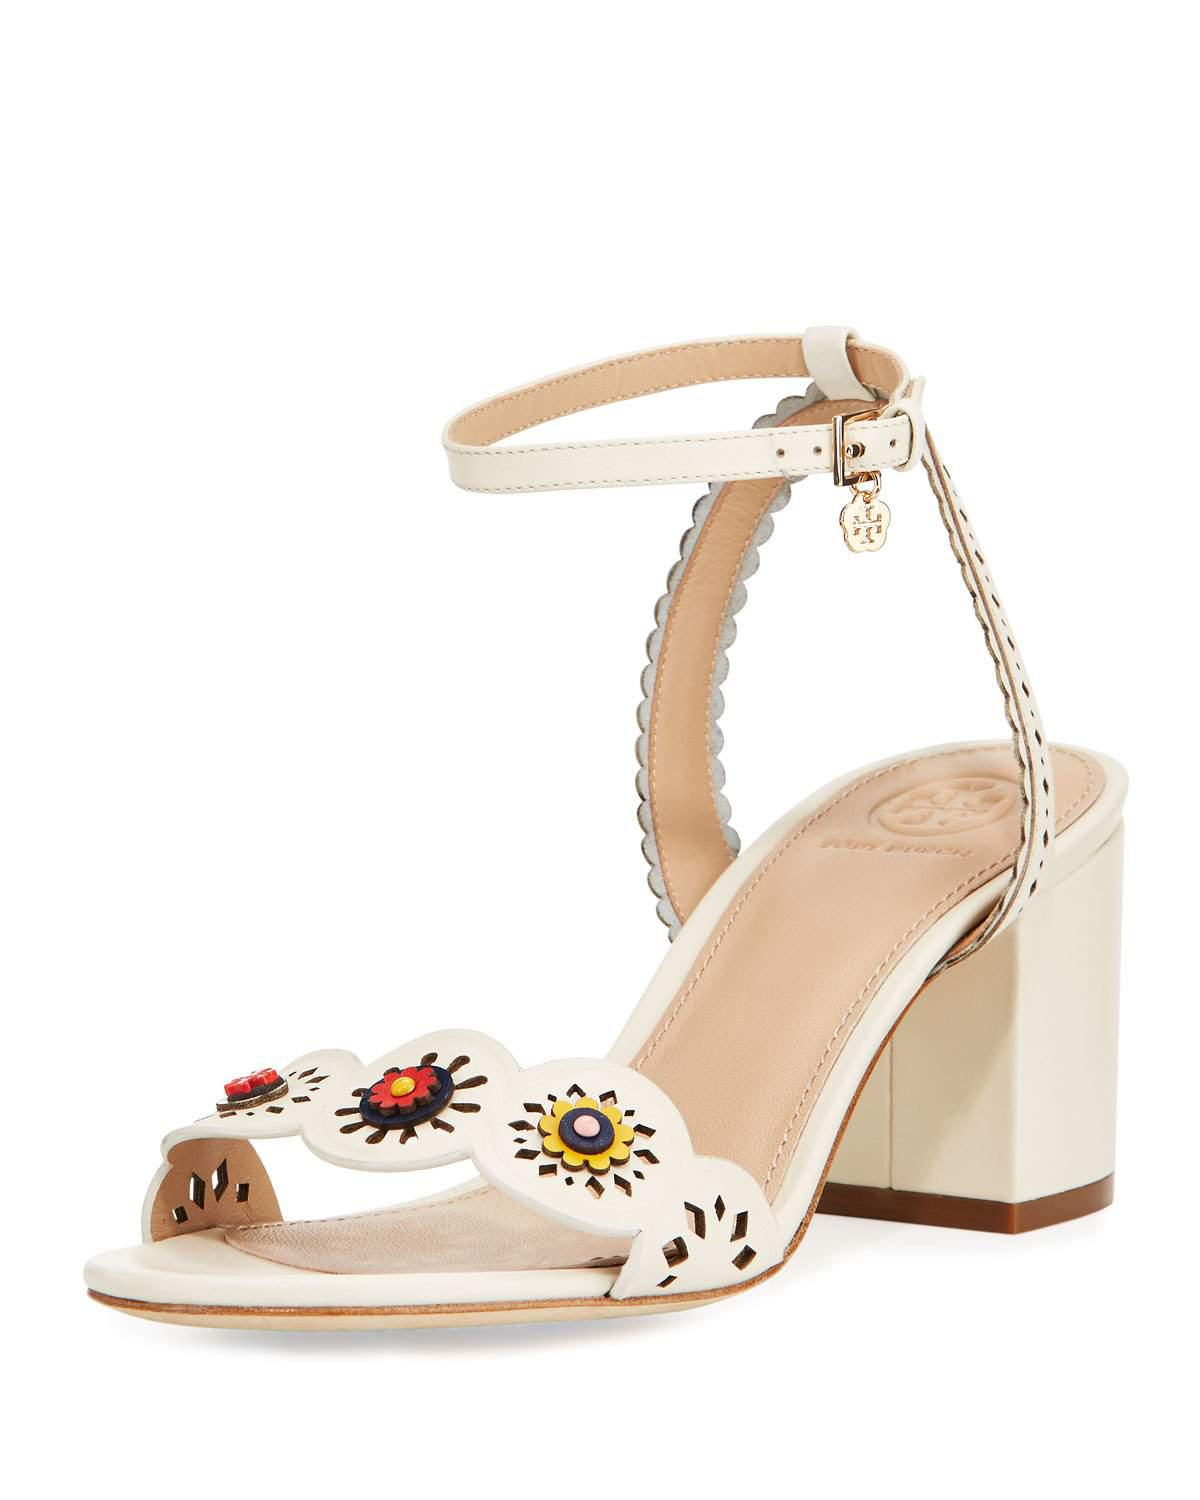 a9a0a1f13dd1be ... Tory Burch Marguerite Perforated Low-heel Sandal in White - Lyst  official site 684a0 f7e6d ... TORY BURCH Marguerite floral-appliquéd leather  ...